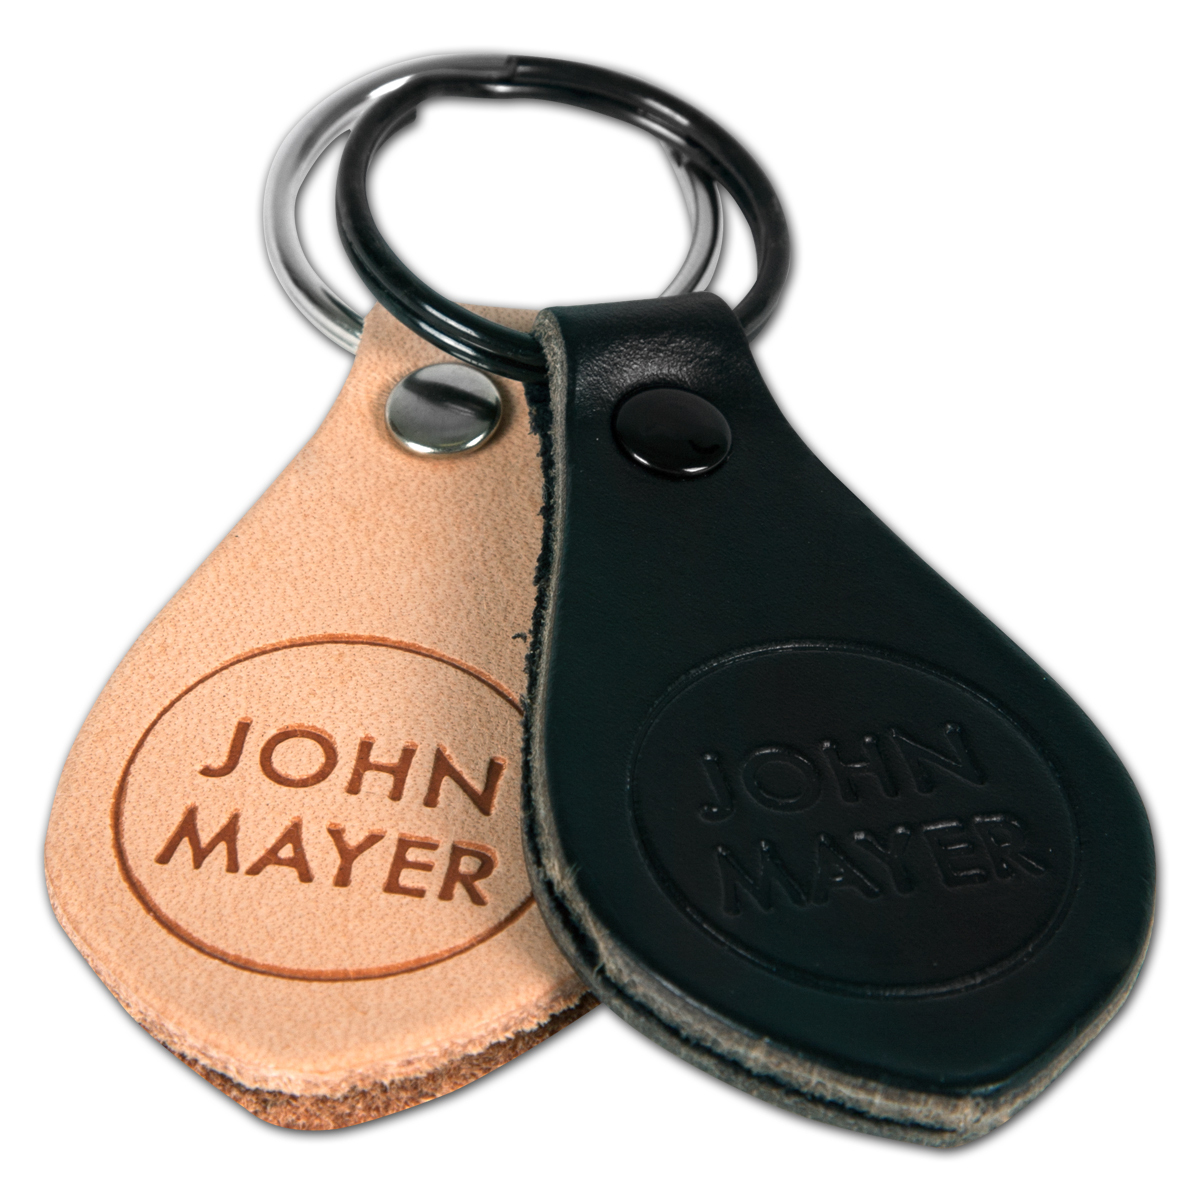 John Mayer Heartbreak Leather Key Fob